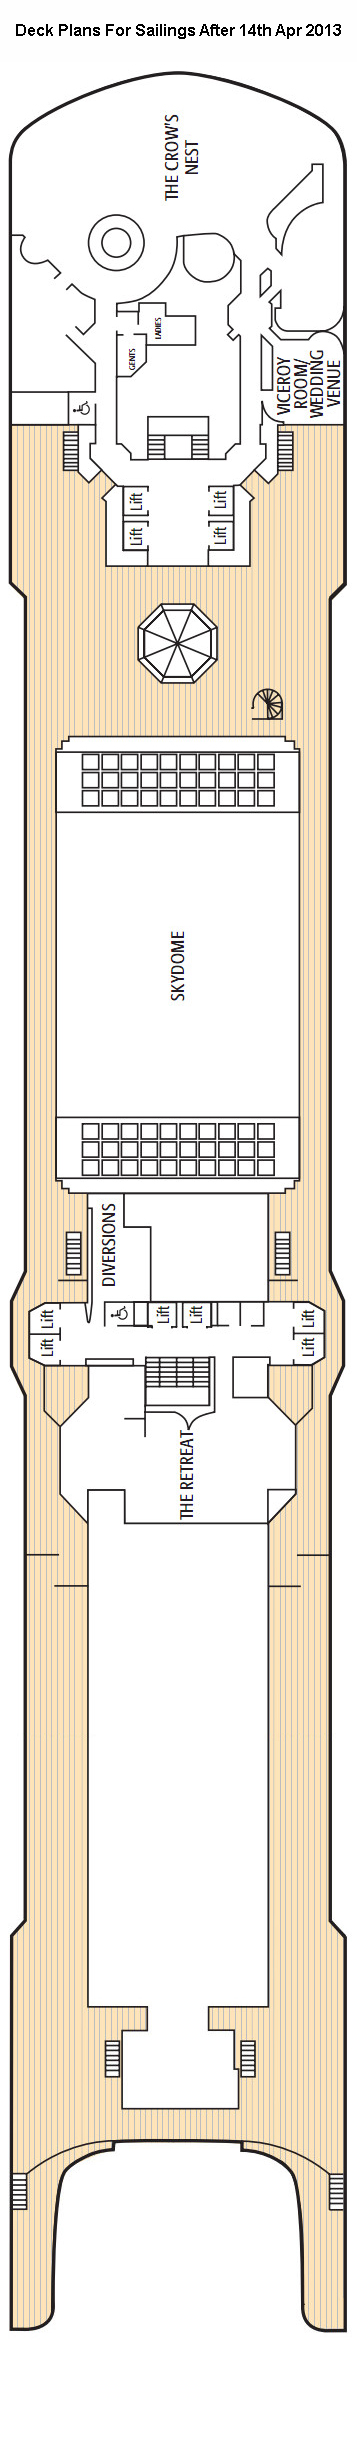 Arcadia Sun Deck layout